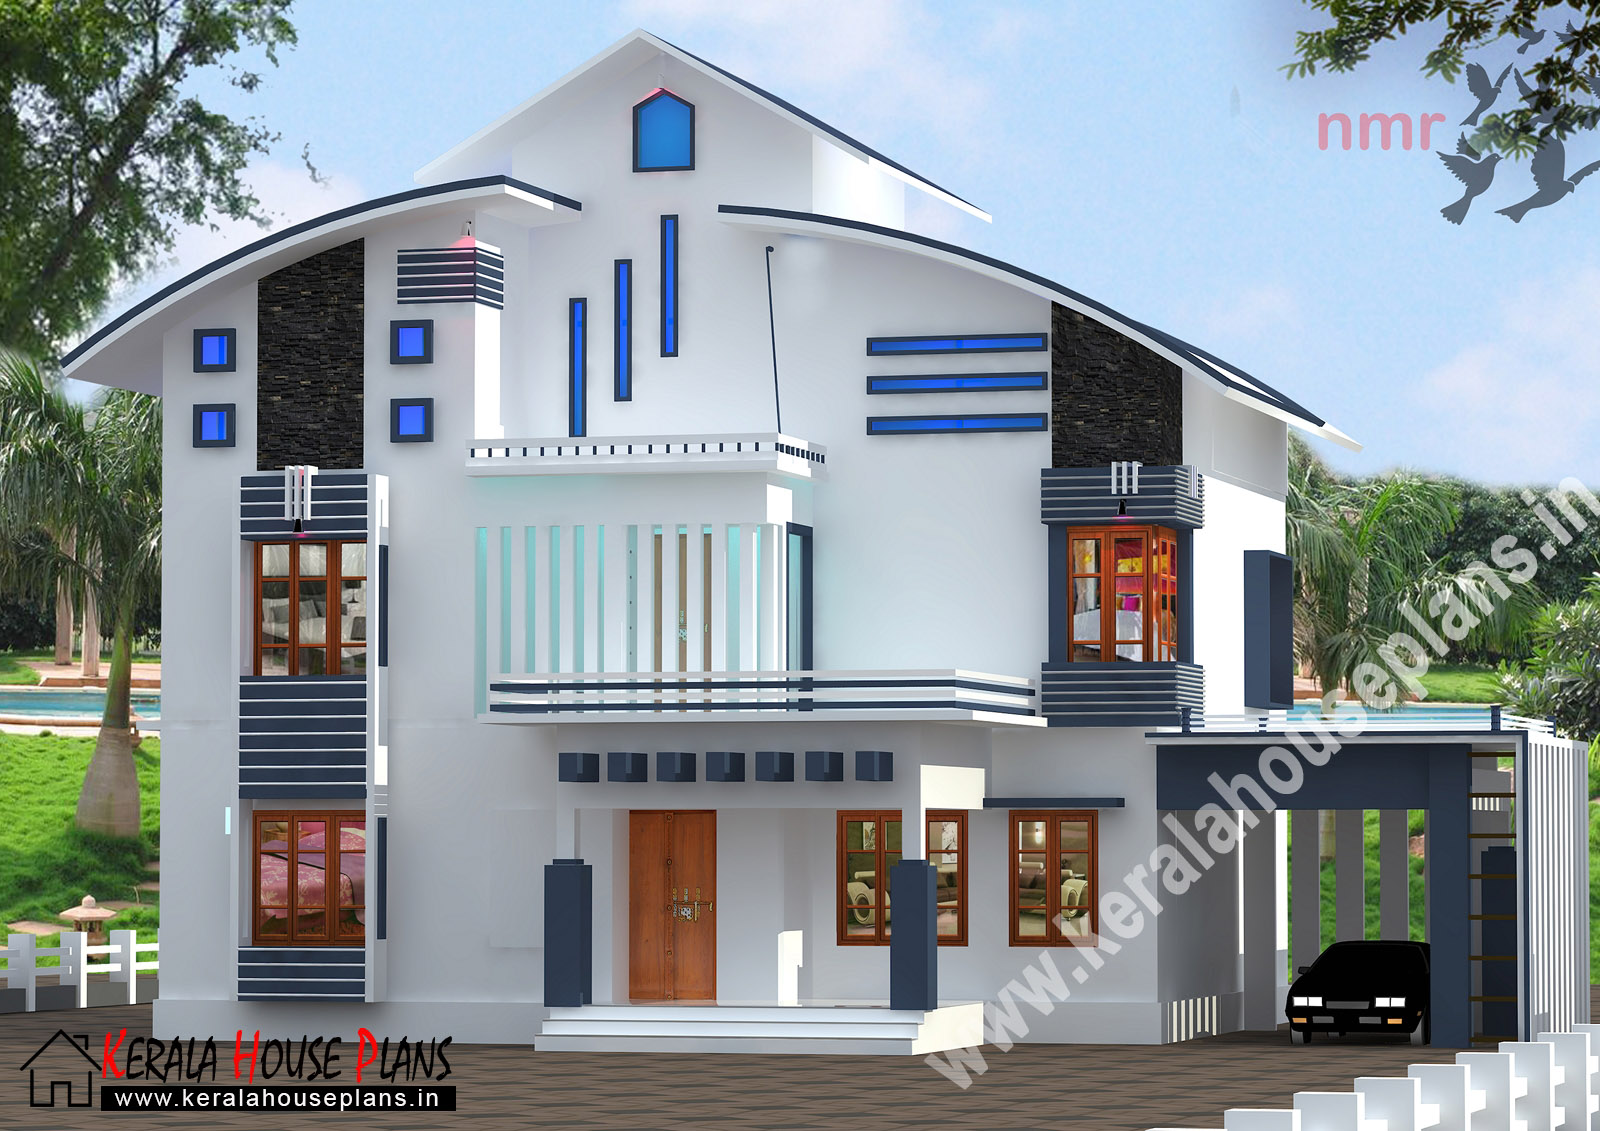 Kerala house plans and designs for Www kerala home plans